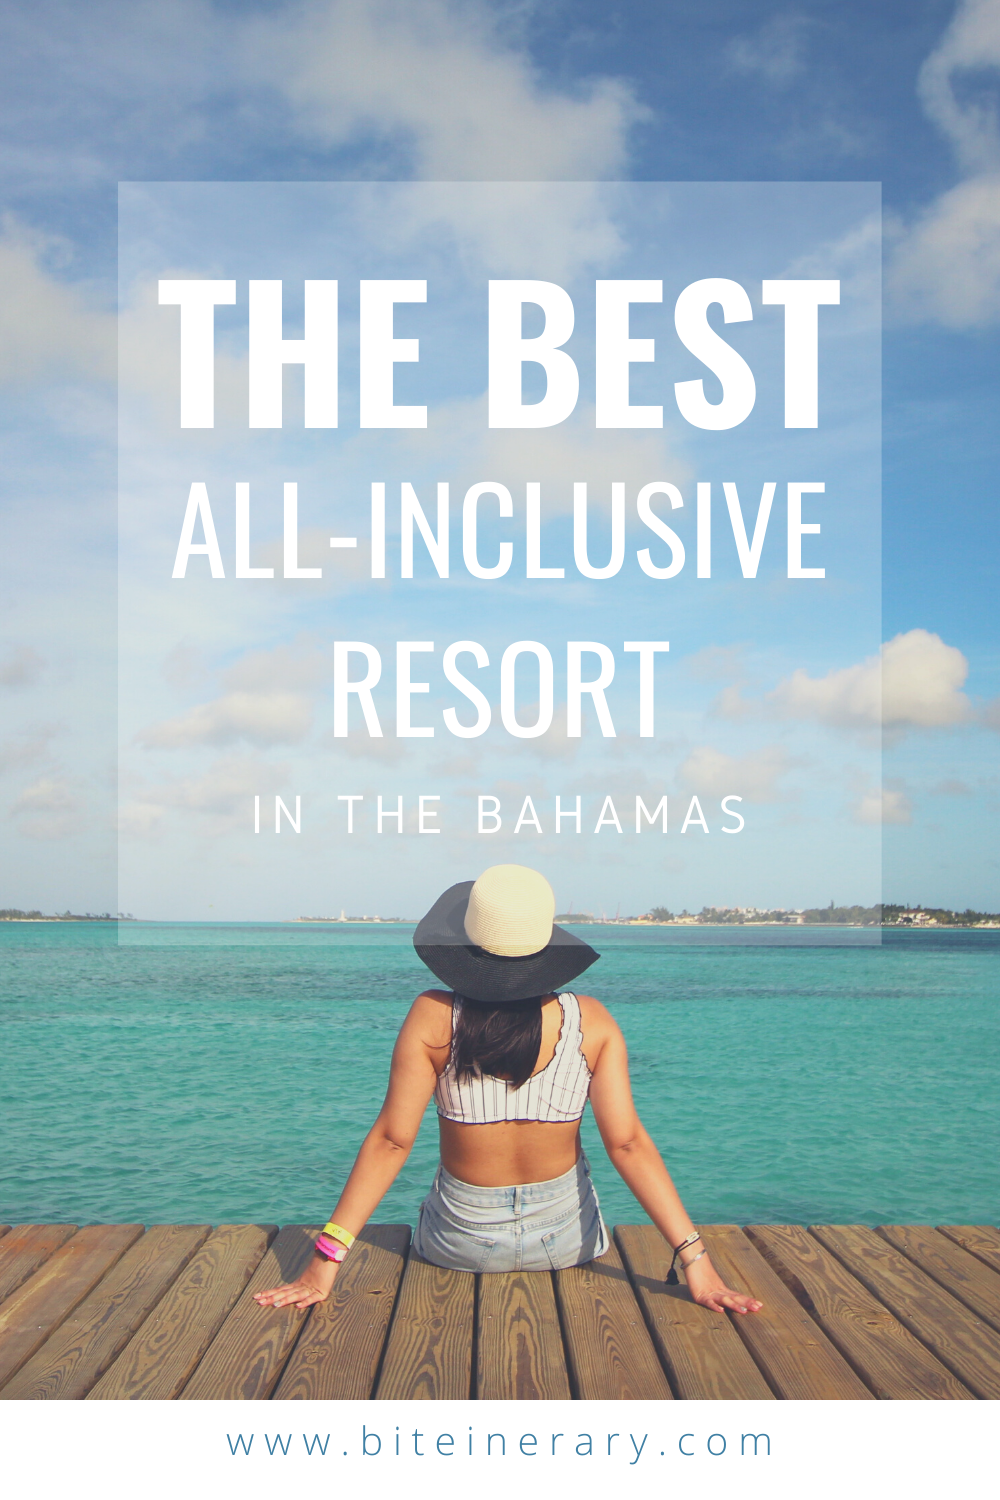 The best all-inclusive resort in Nassau, Bahamas by Biteinerary